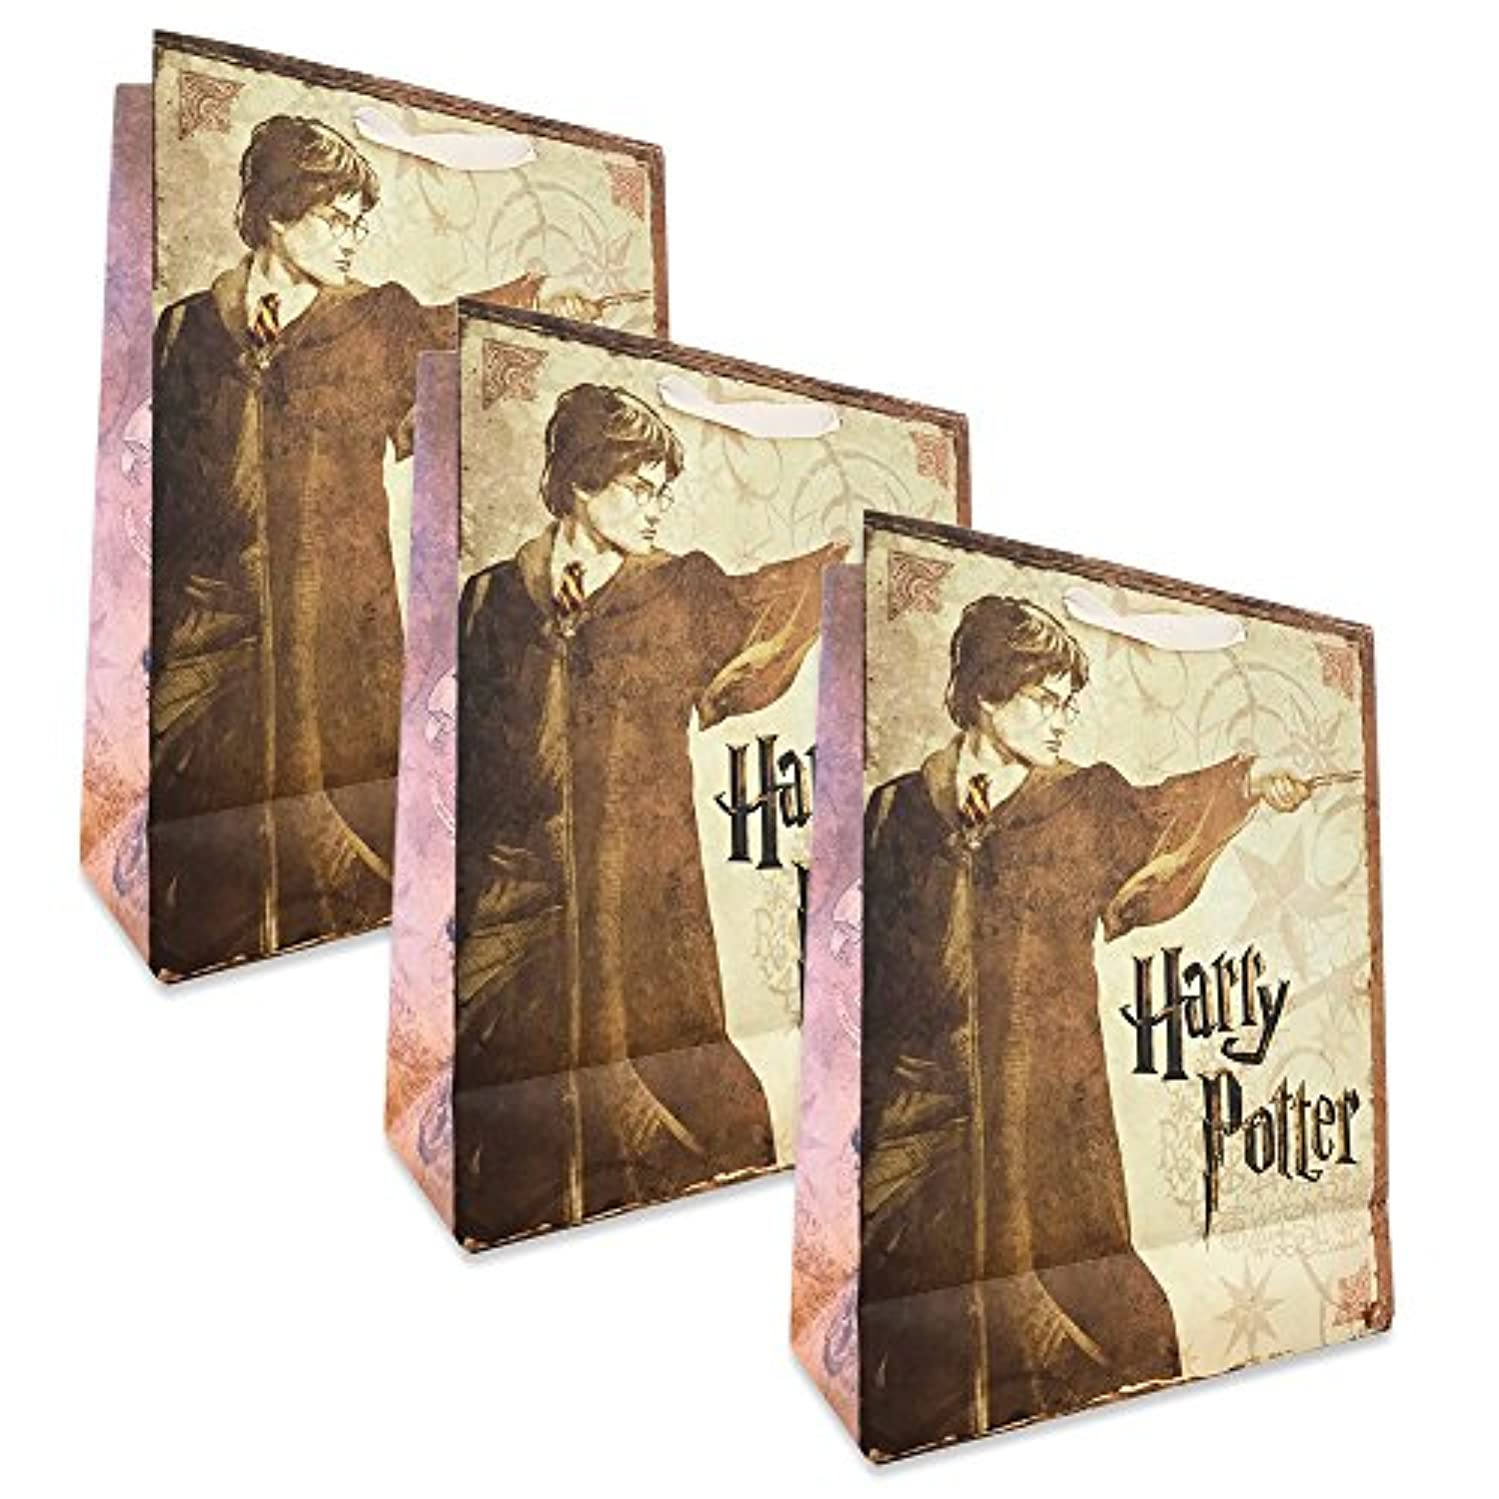 Harry Potter Gift Bags Set -- Pack of 3 Harry Potter Party Favor Bags, 9 x 12 Inches (Party Supplies)